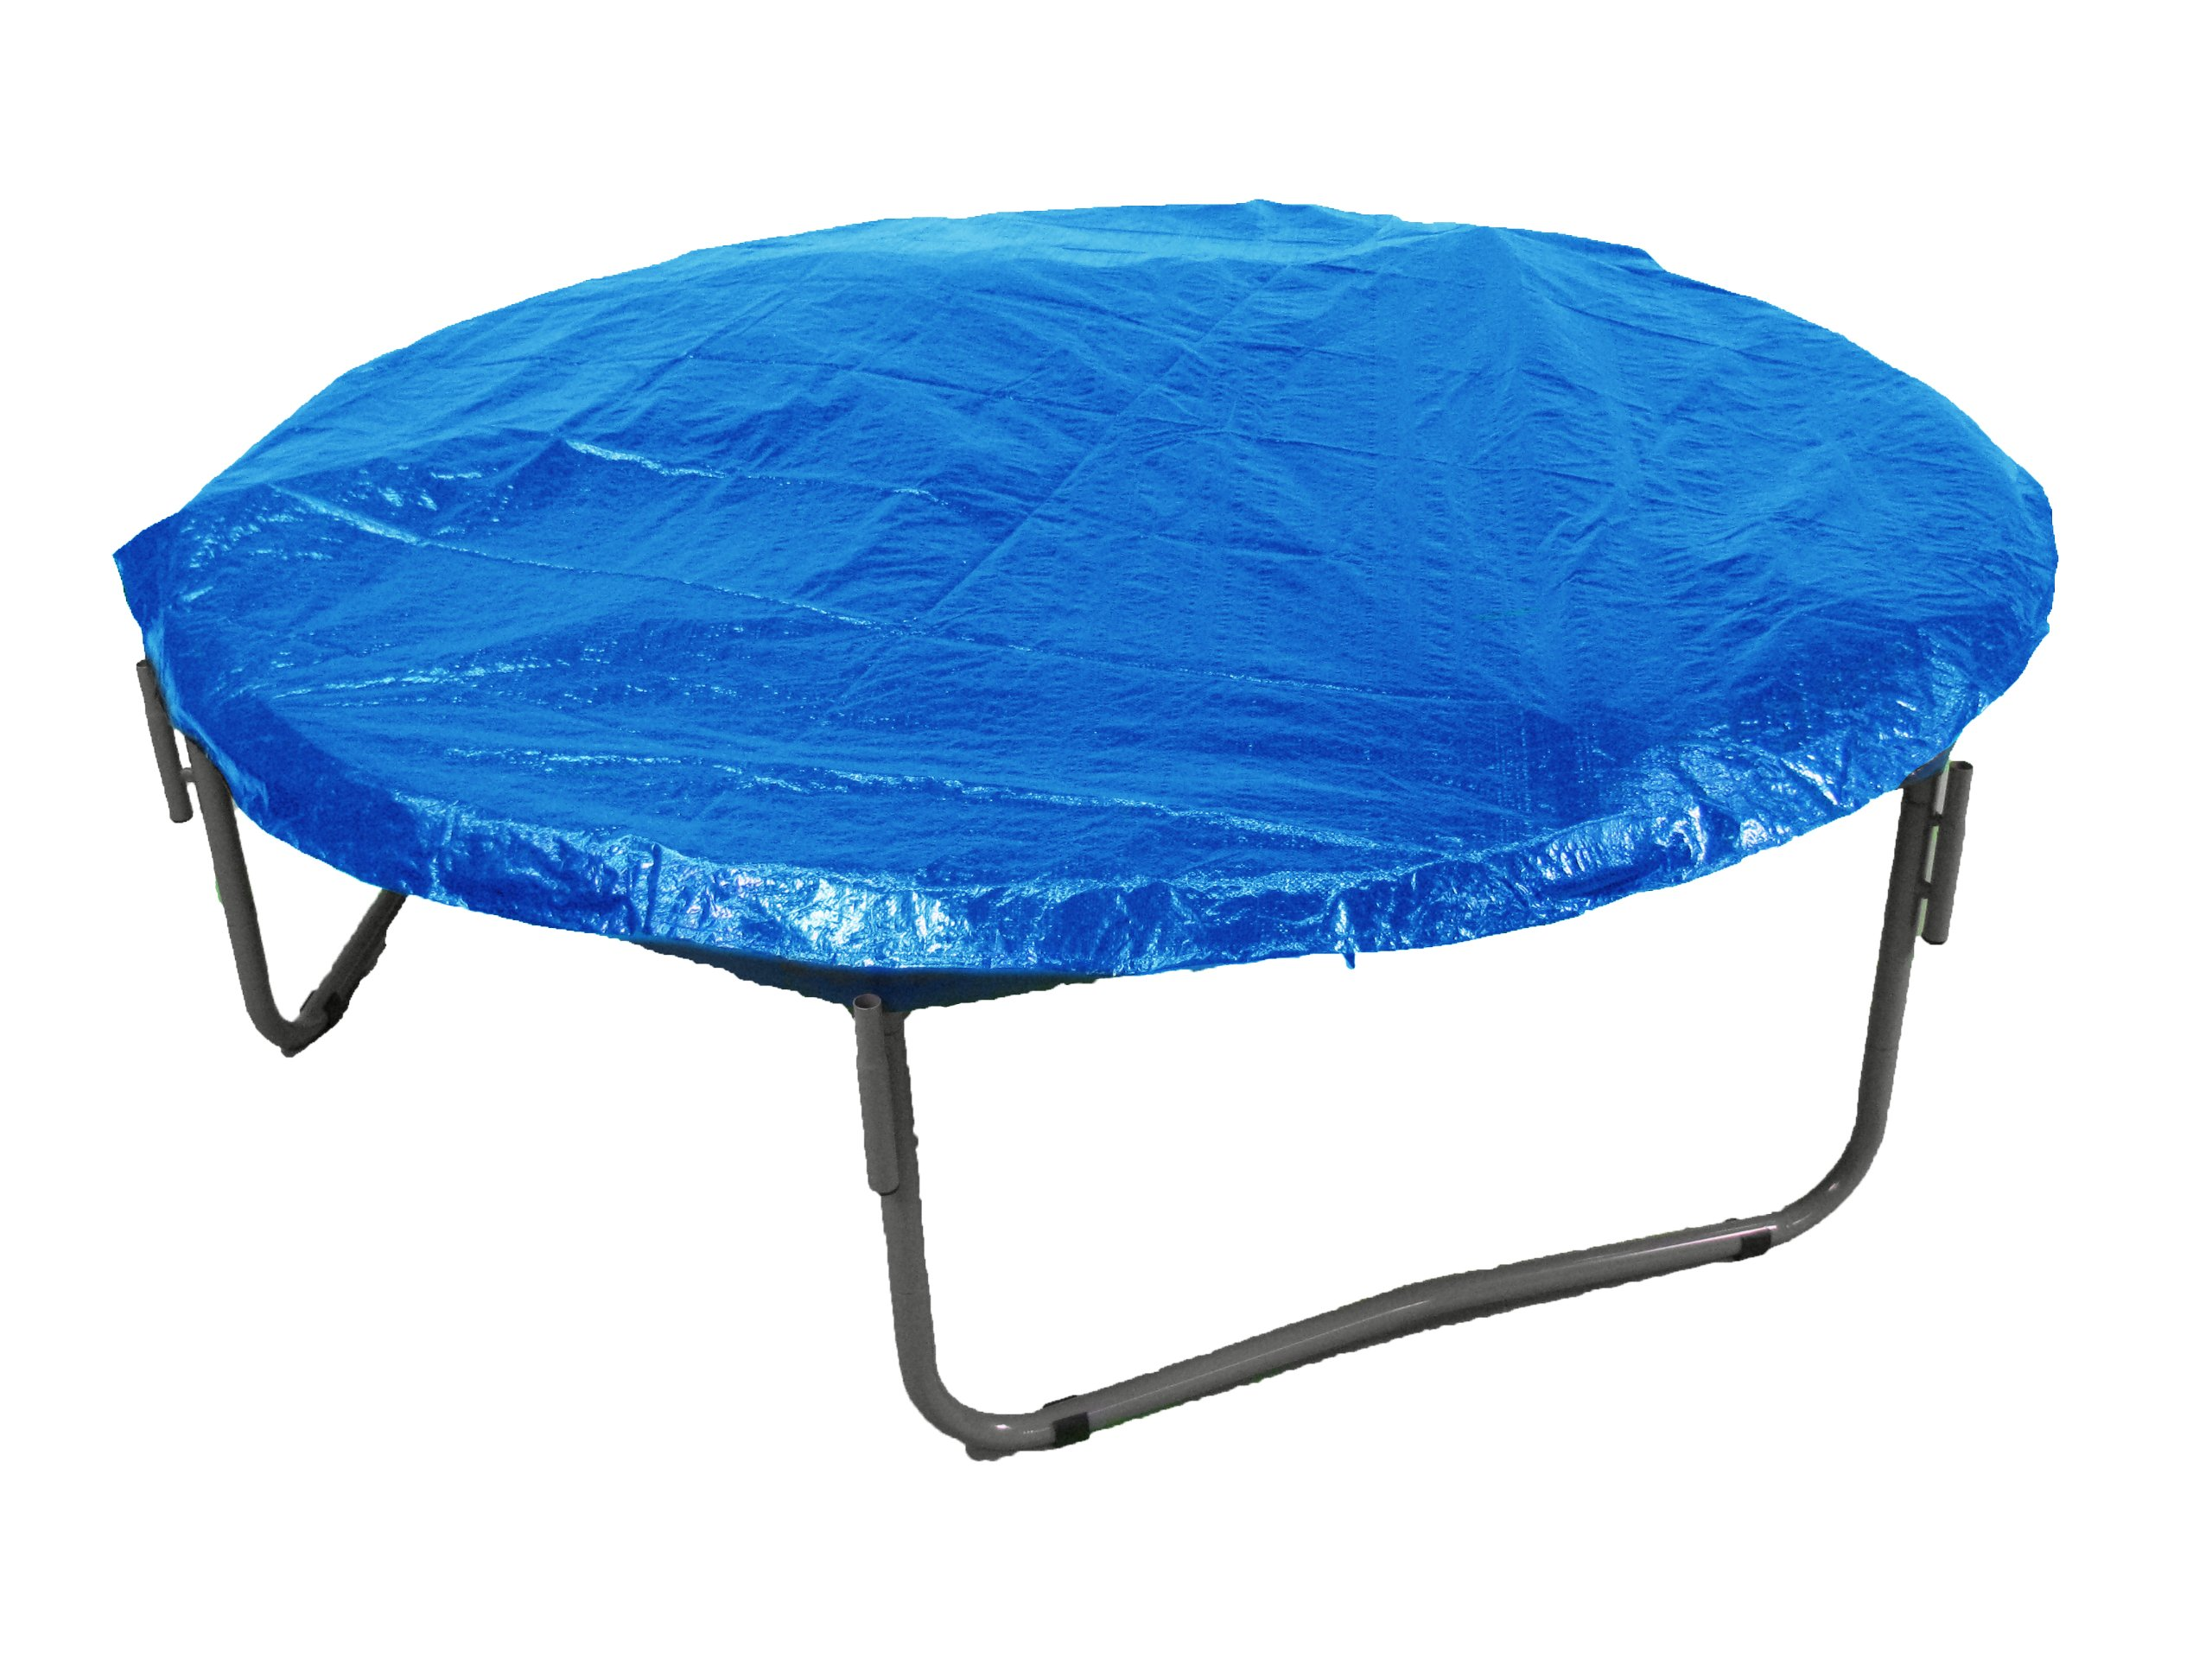 Upper Bounce Economy Trampoline Weather Protection Cover, Fits for Sports Power Model # TR-1463A-enc - Blue by Upper Bounce (Image #1)